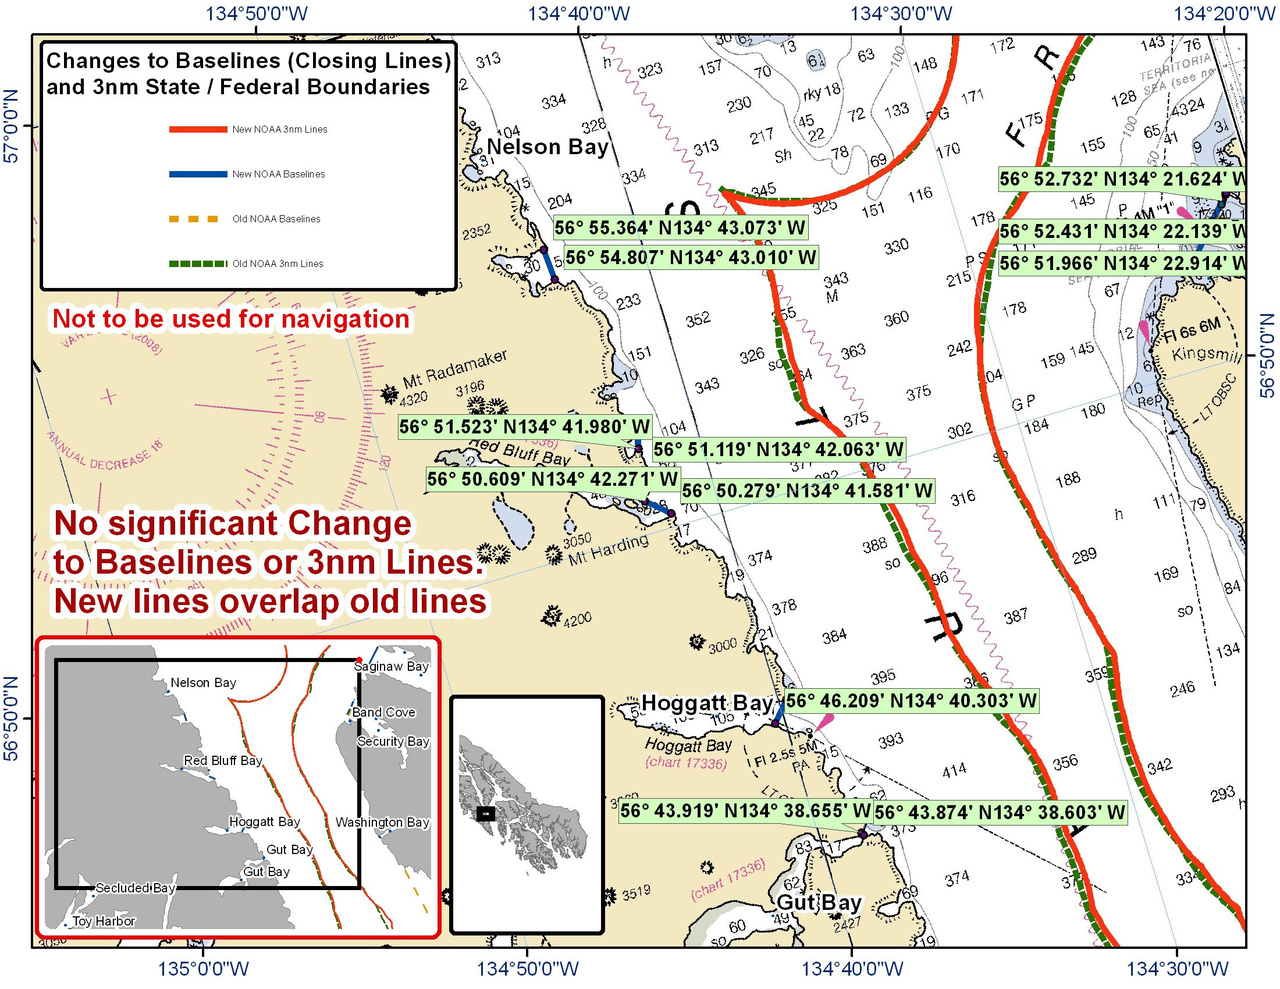 Chart for Hoggart Bay and the Surrounding Area